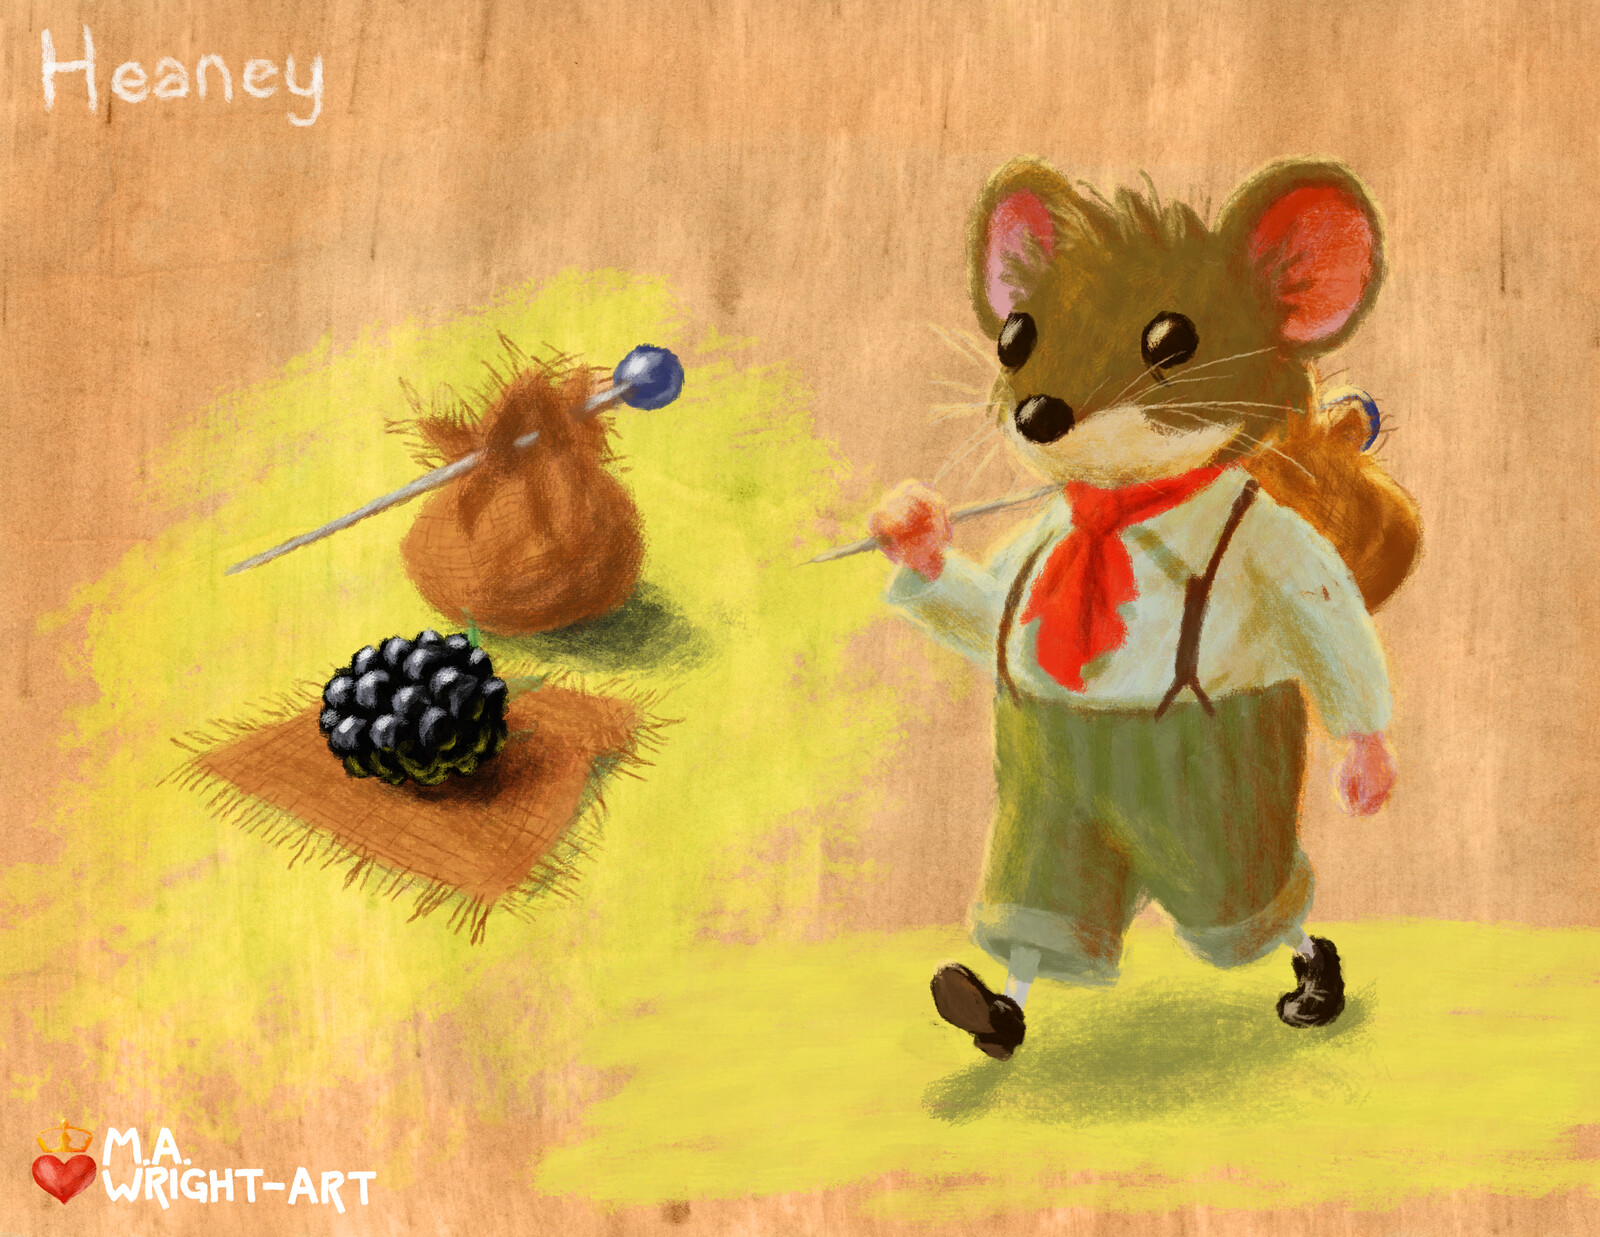 Heaney & his black berry bindle.